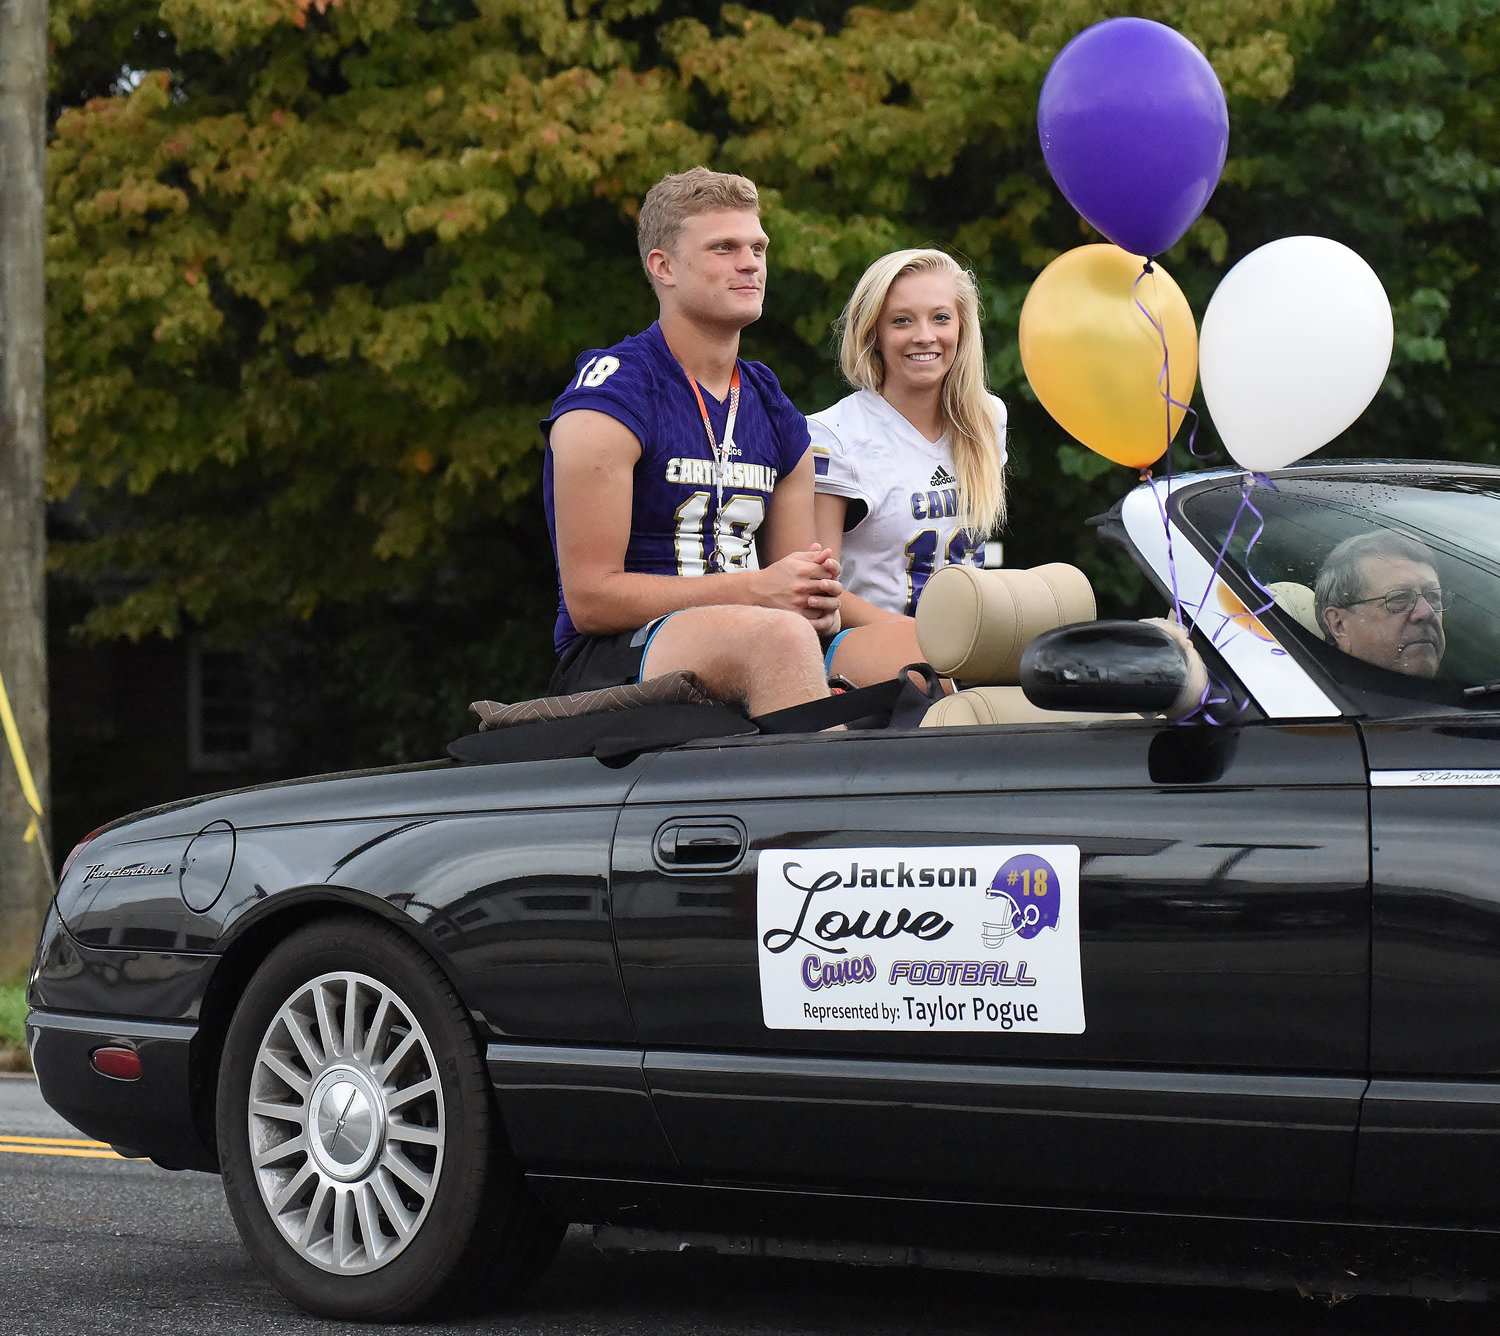 Jackson Lowe and Taylor Pogue proudly represent their school during the parade.